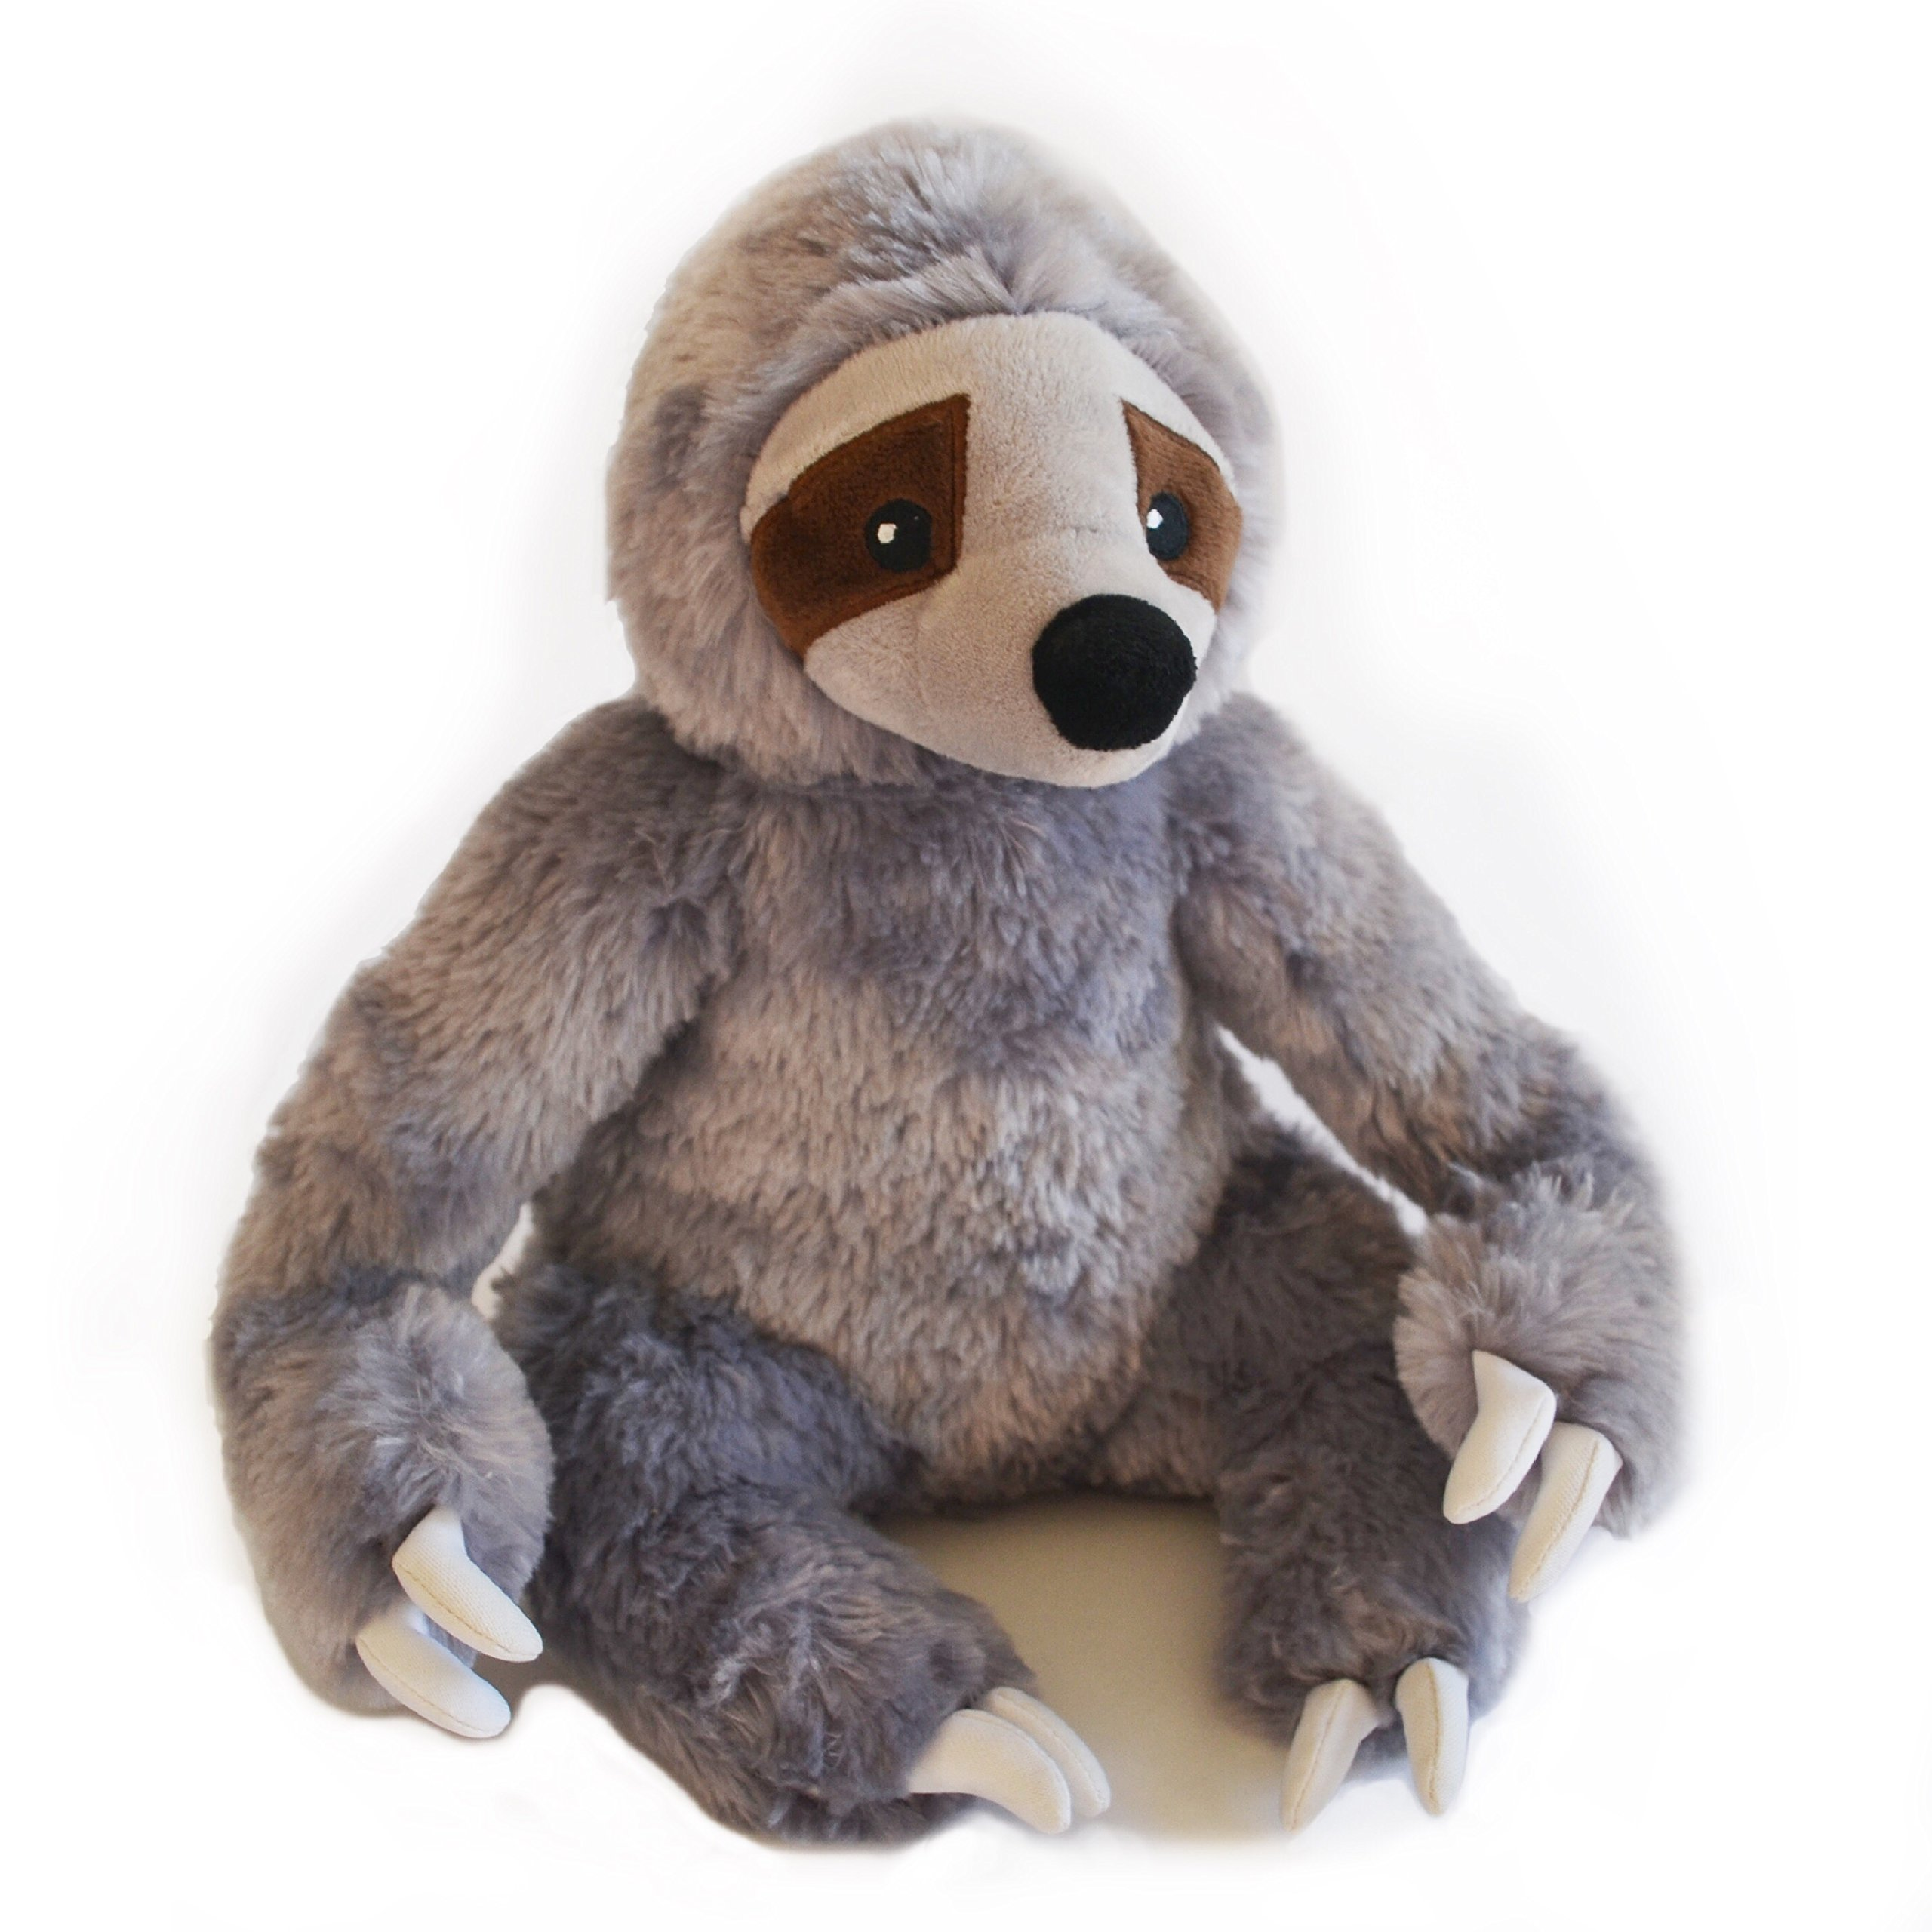 Stanley the Stinky Sloth, Farting Plush Dog Toy with Sound Insert